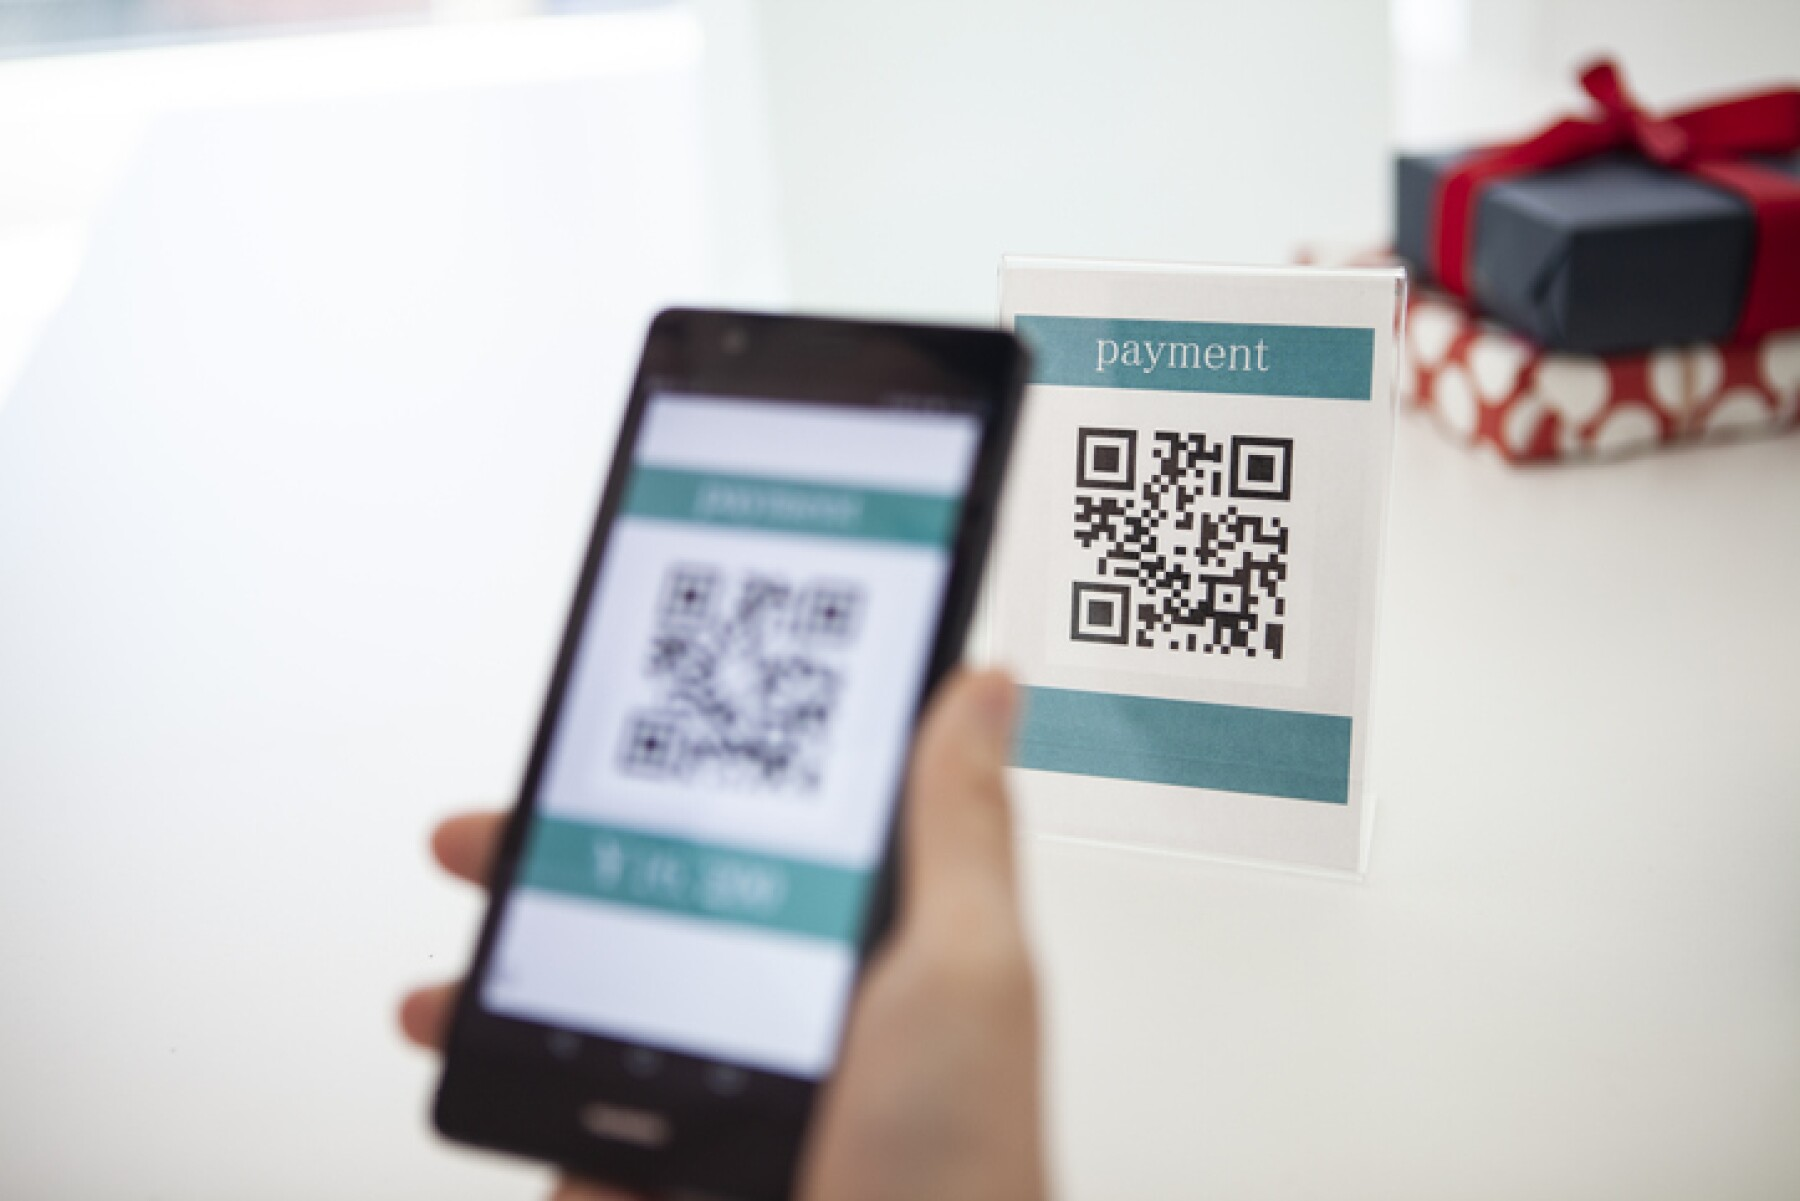 Electronic settlement with bar code reader